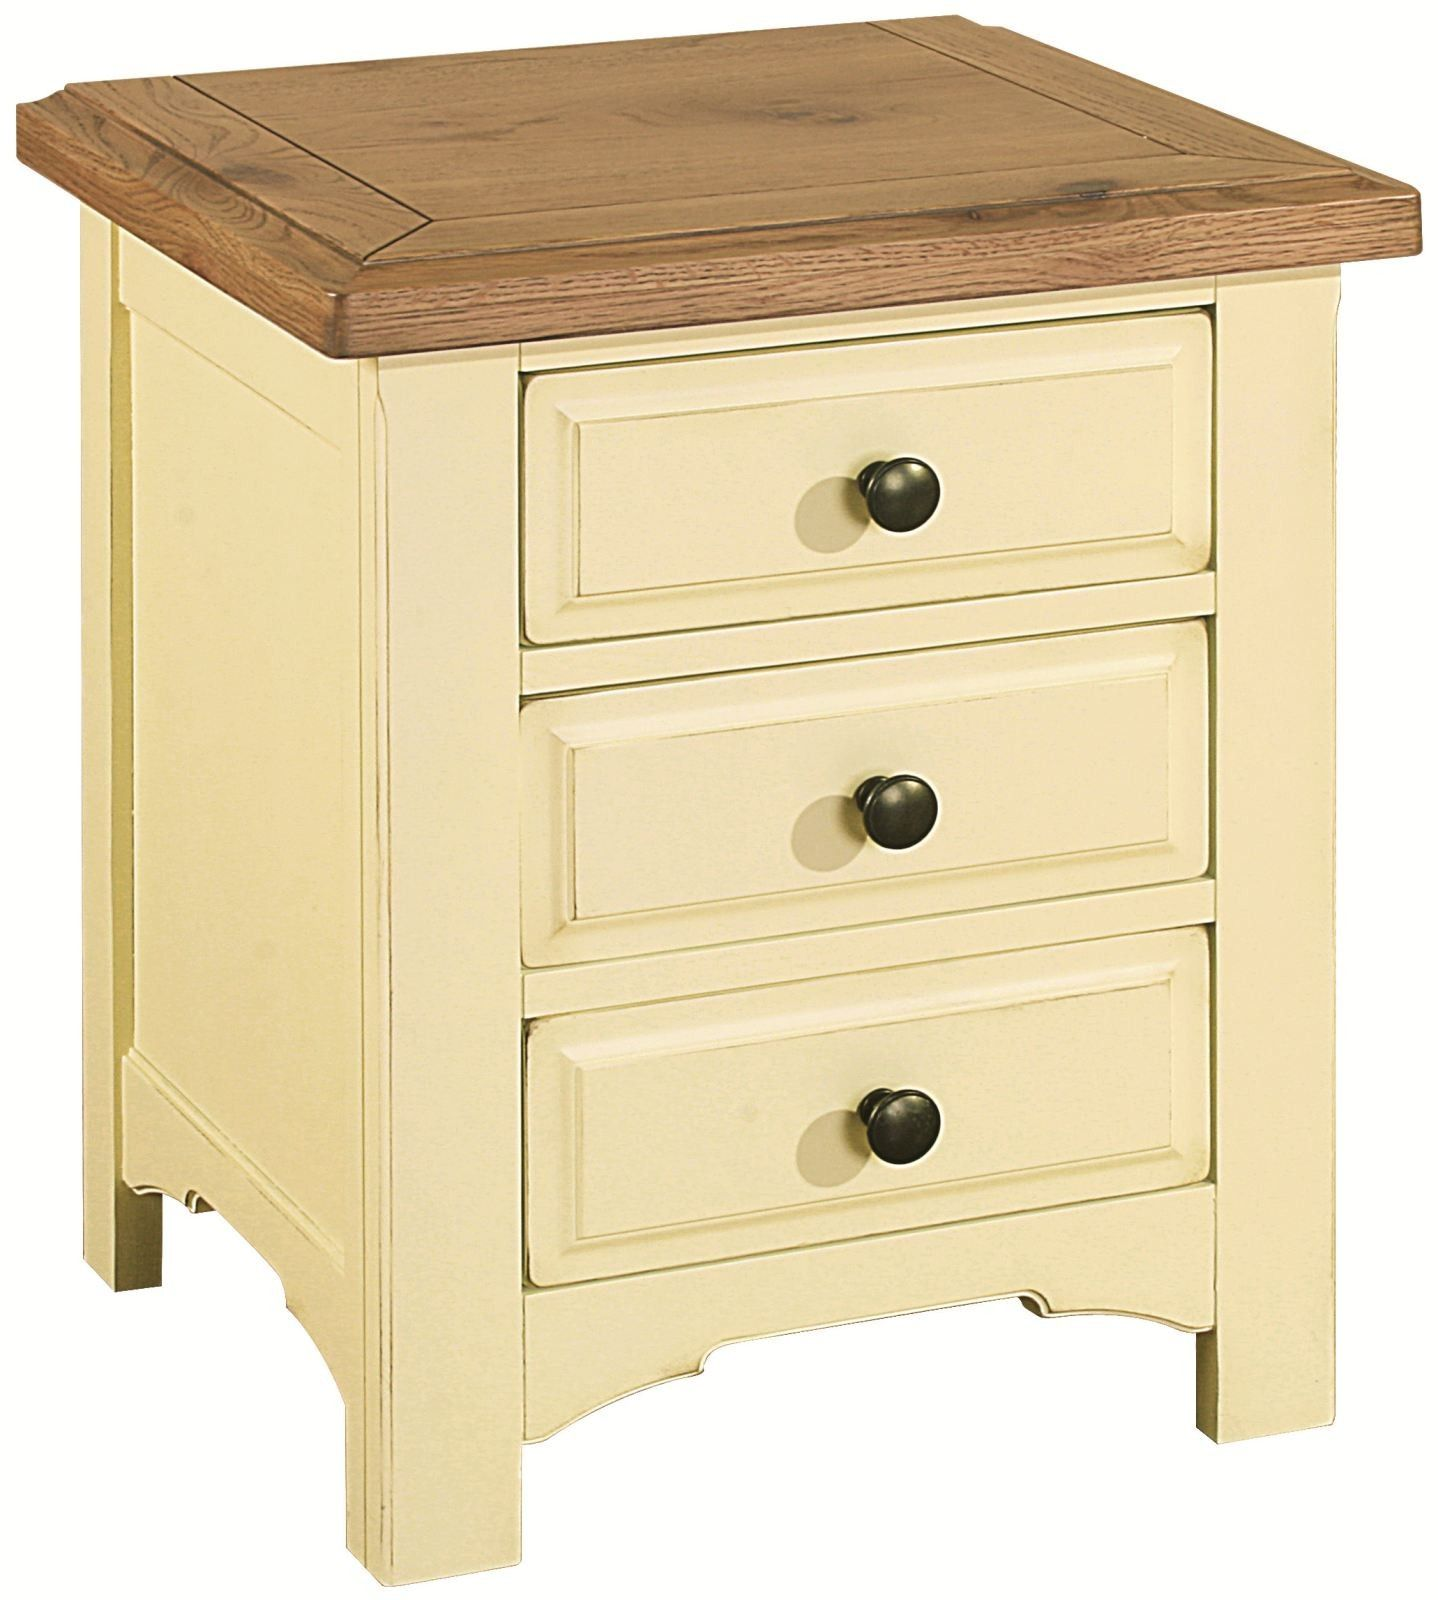 Unusual Camden Painted Beige Bedside Table Furniture Design Ideas With Solid Pine Wood Materials And Oak Bedroom Furniture Oak Bedside Cabinets Bedside Cabinet